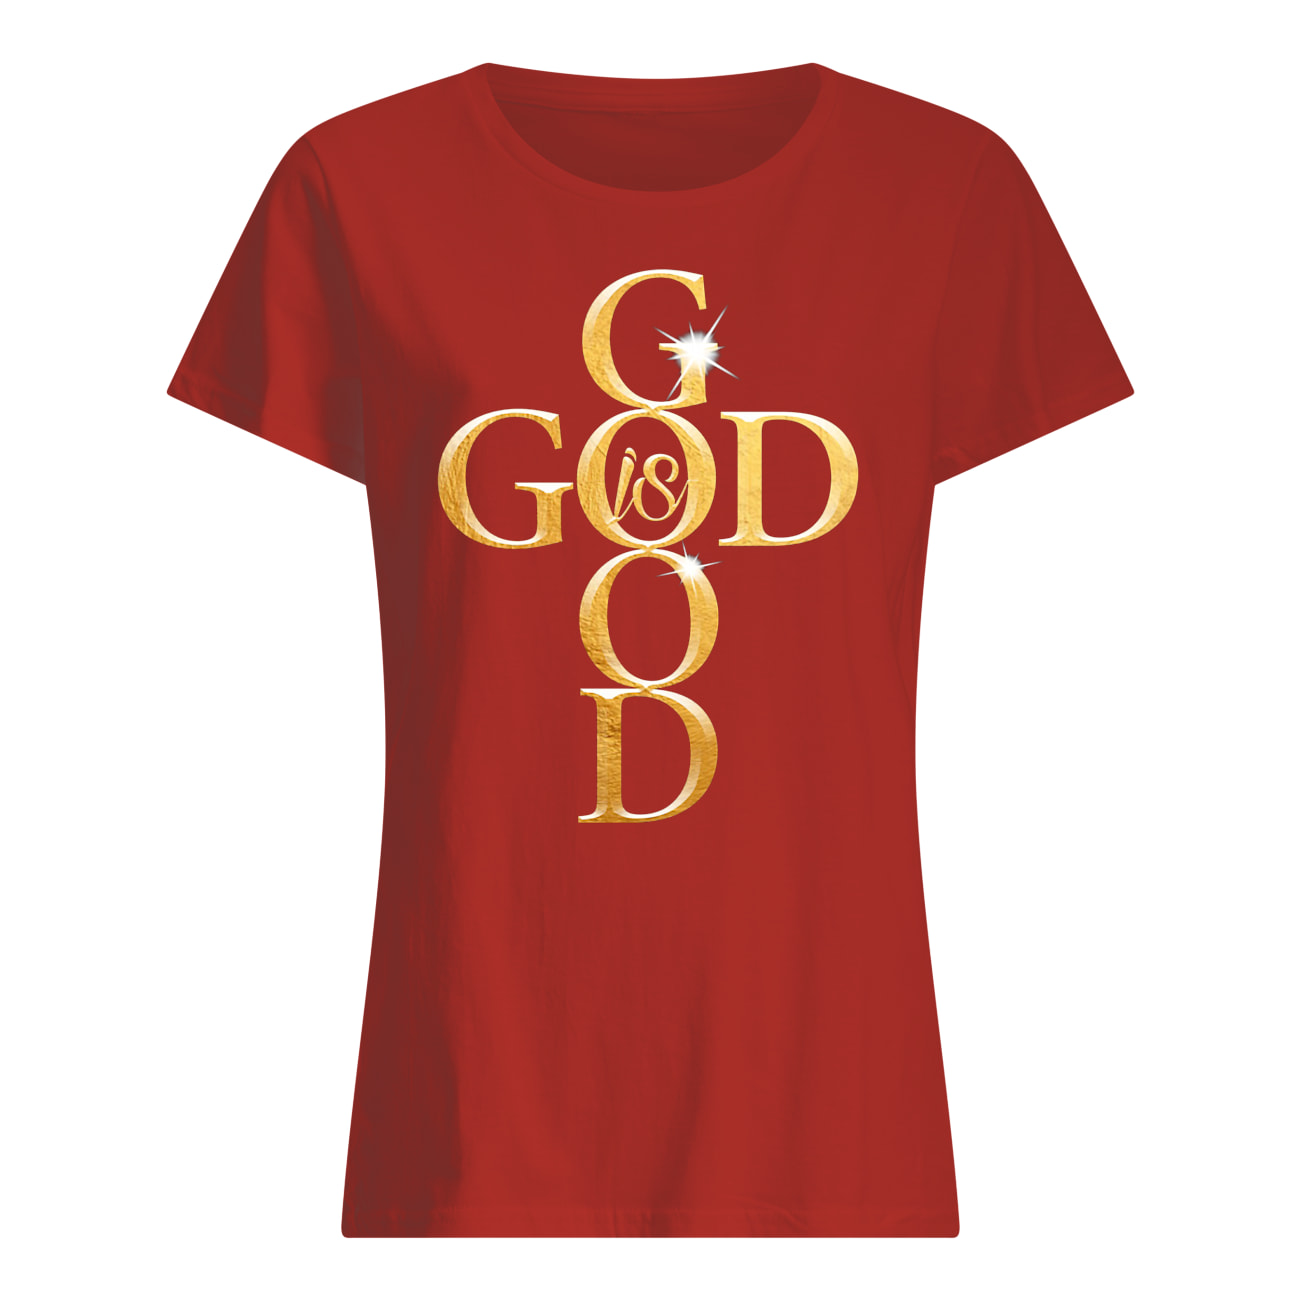 God is good womens shirt